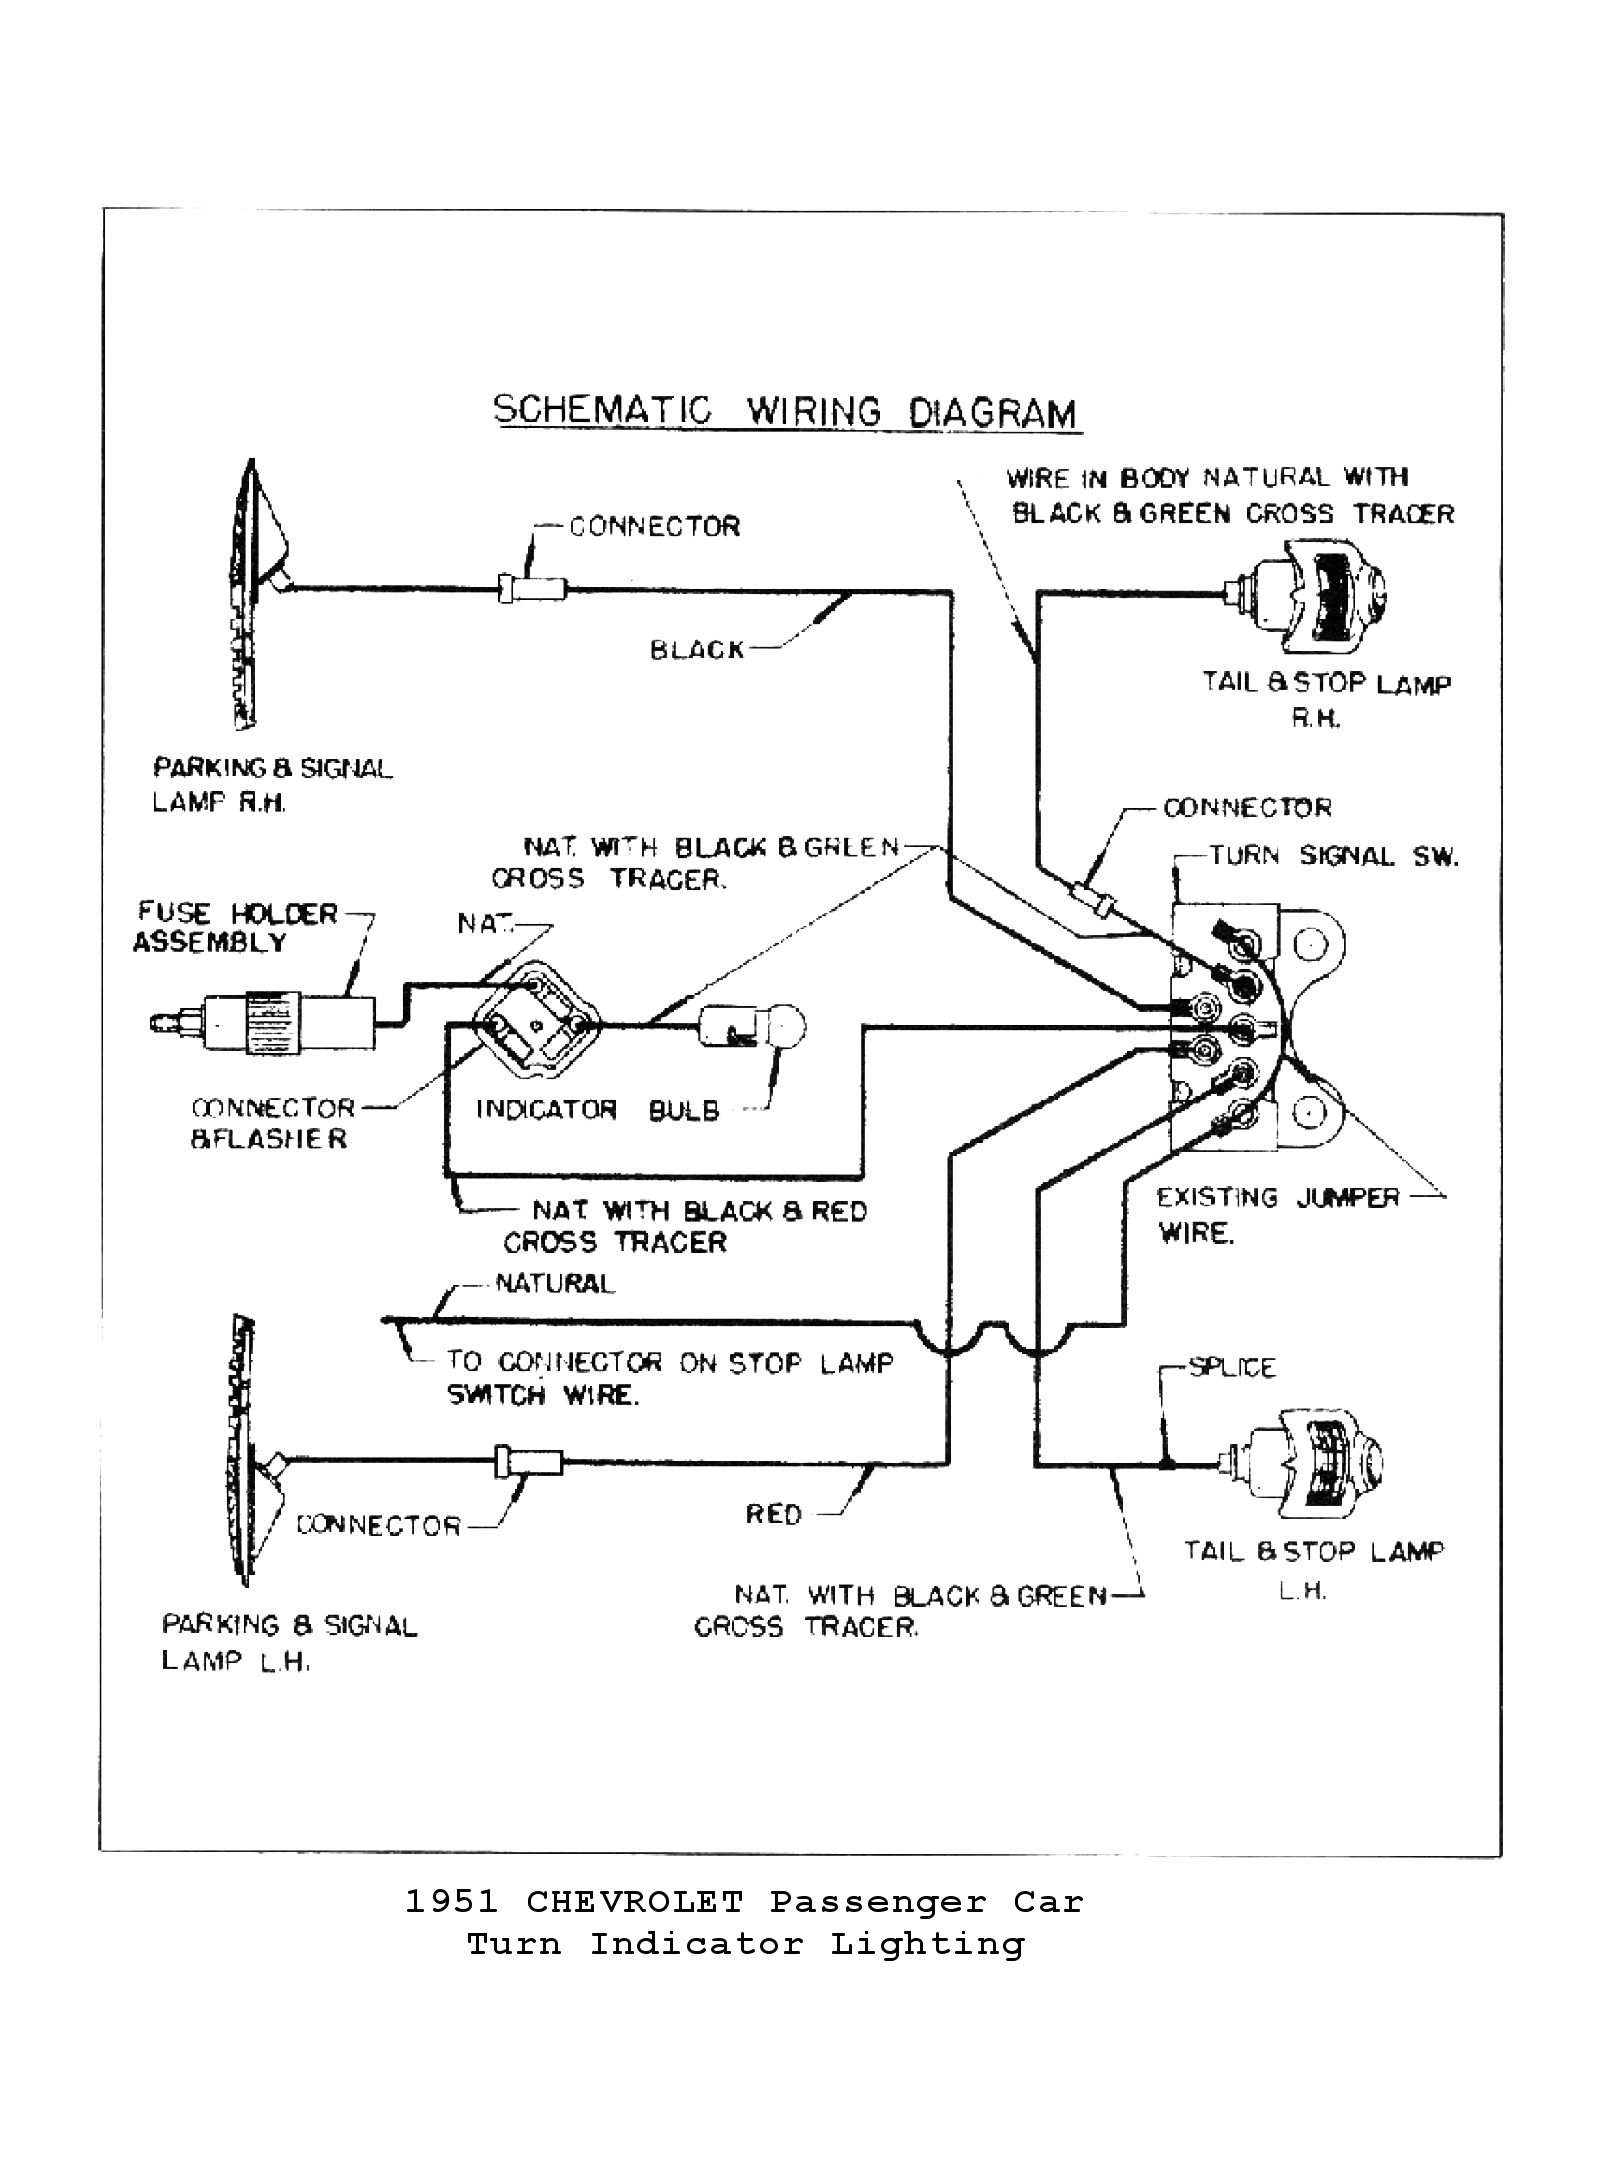 5152turnsignals 55 chevy heater diagram wiring schematic wiring diagram simonand 66 Chevy Headlight Switch Wiring Diagram at couponss.co